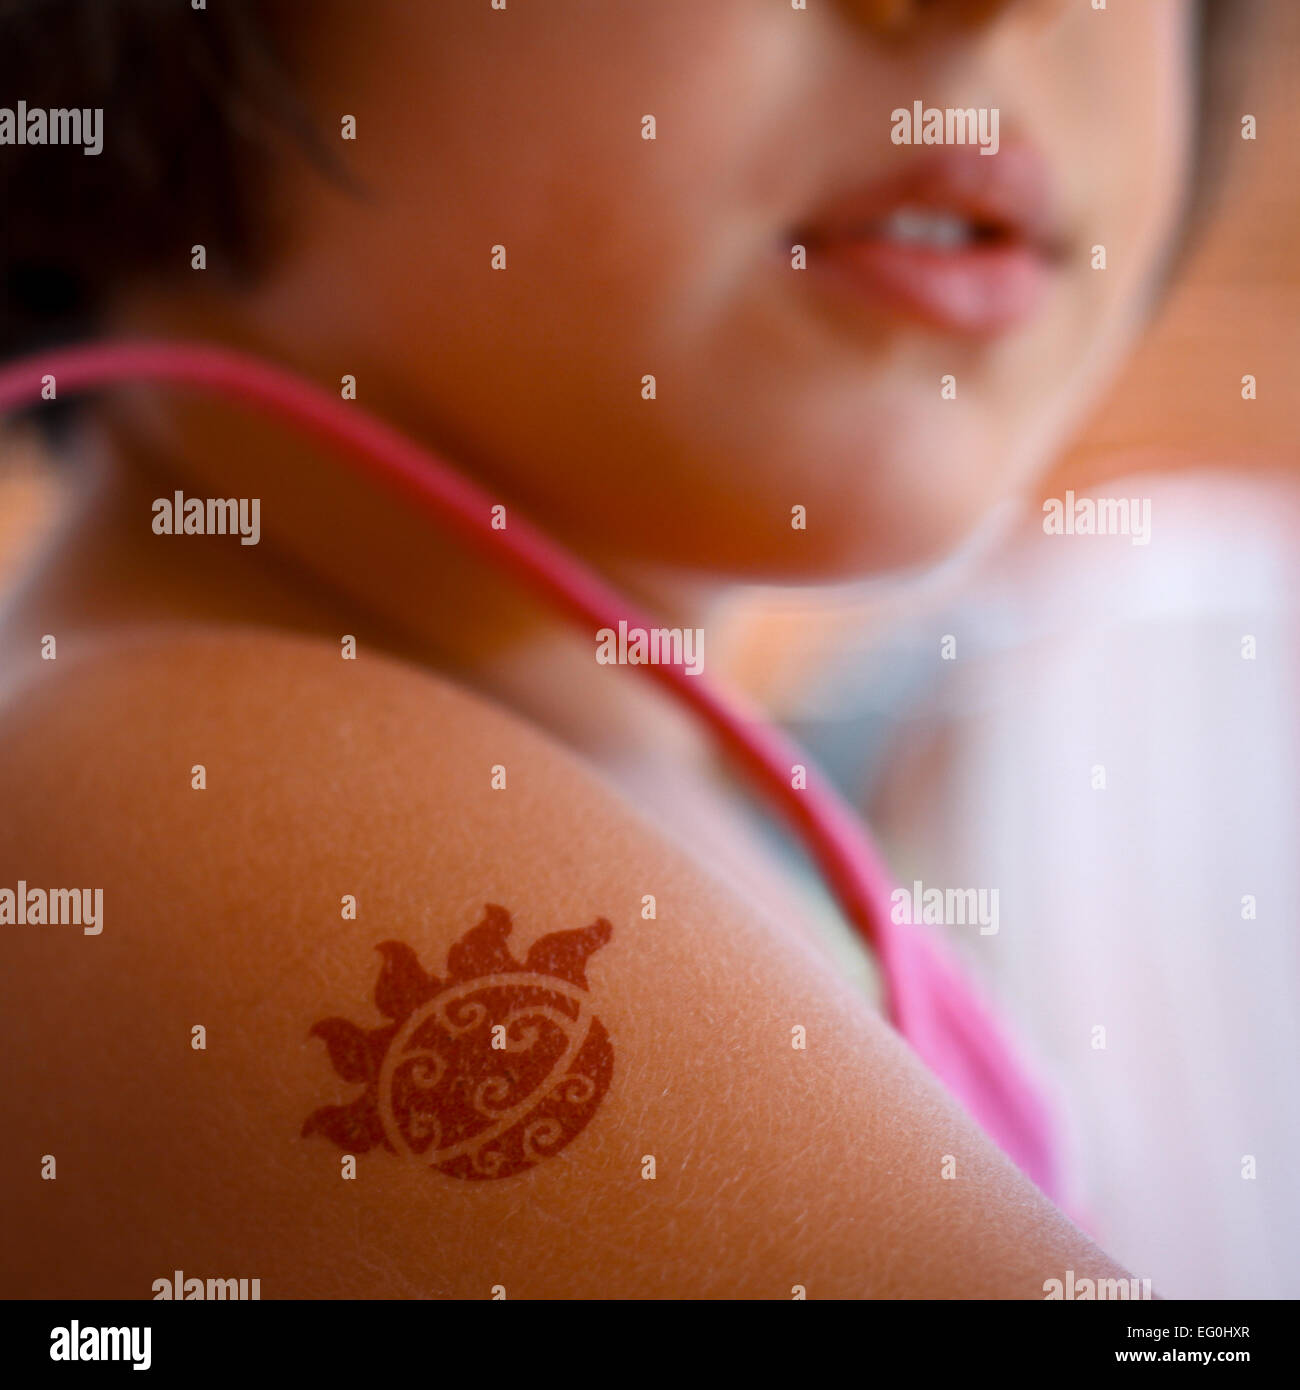 Girl (4-5) with fake tattoo - Stock Image